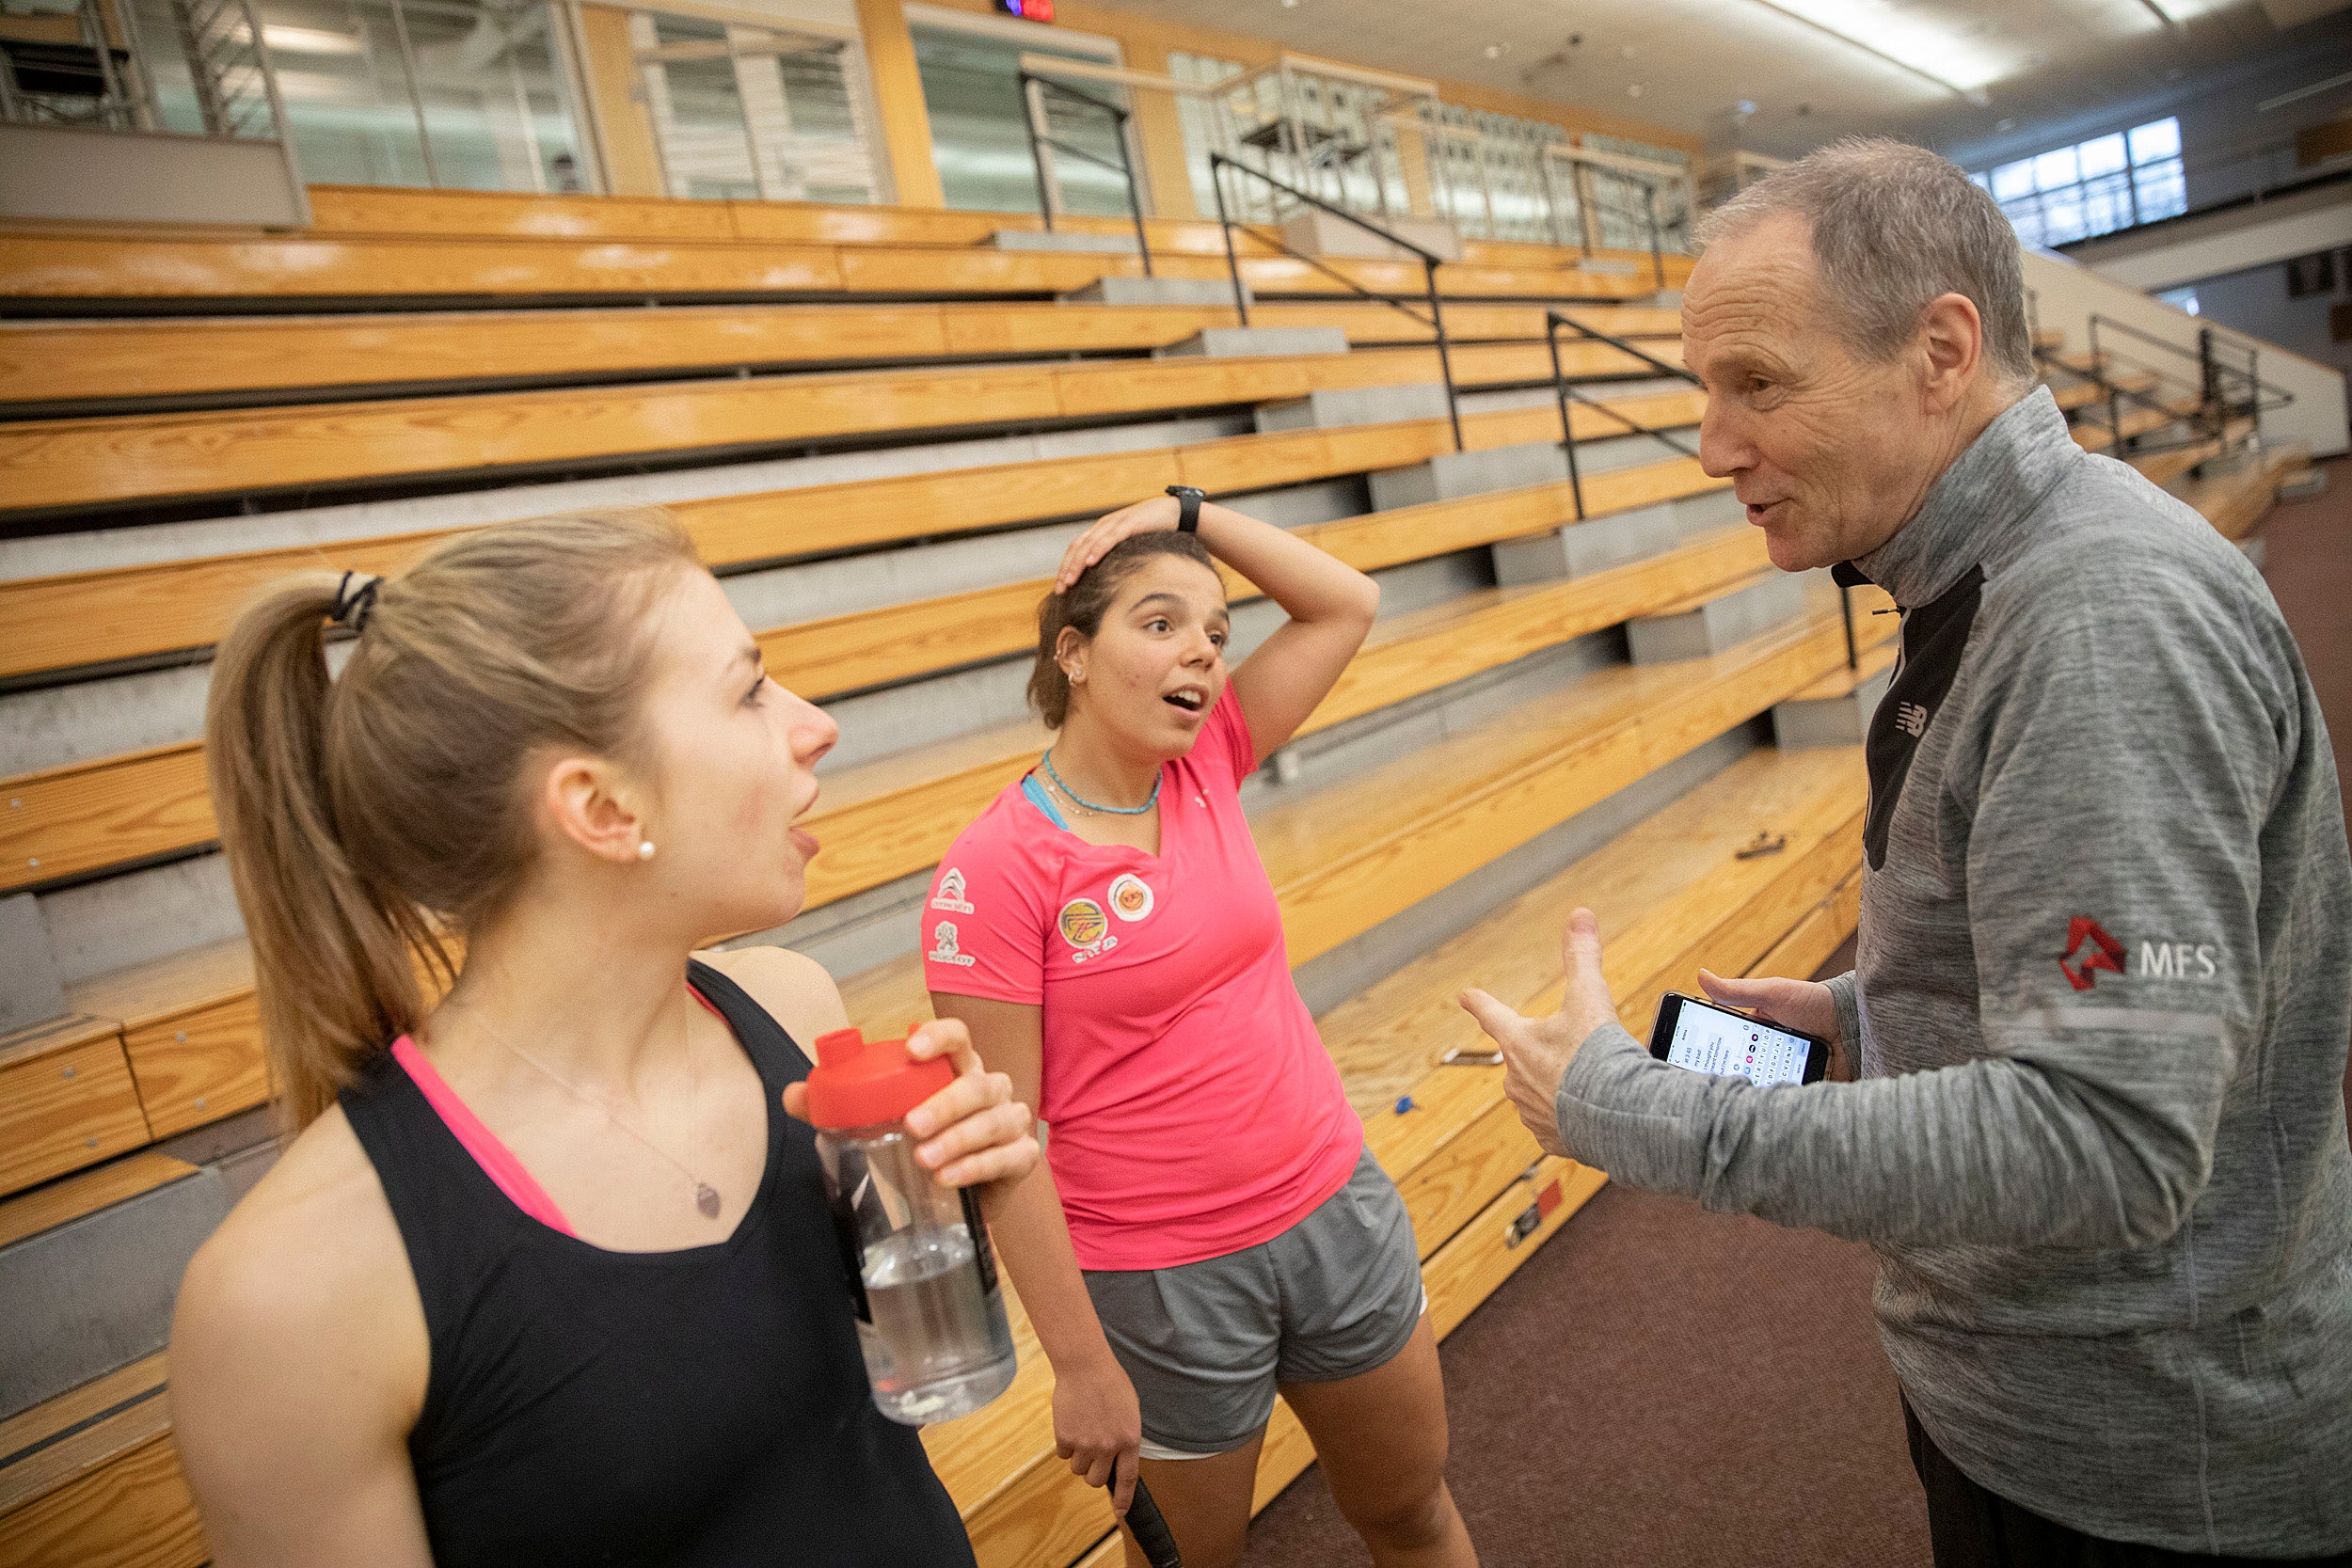 Amelia Henley and Amina Yousrytalk to coach Mike Way at the Murr Center.